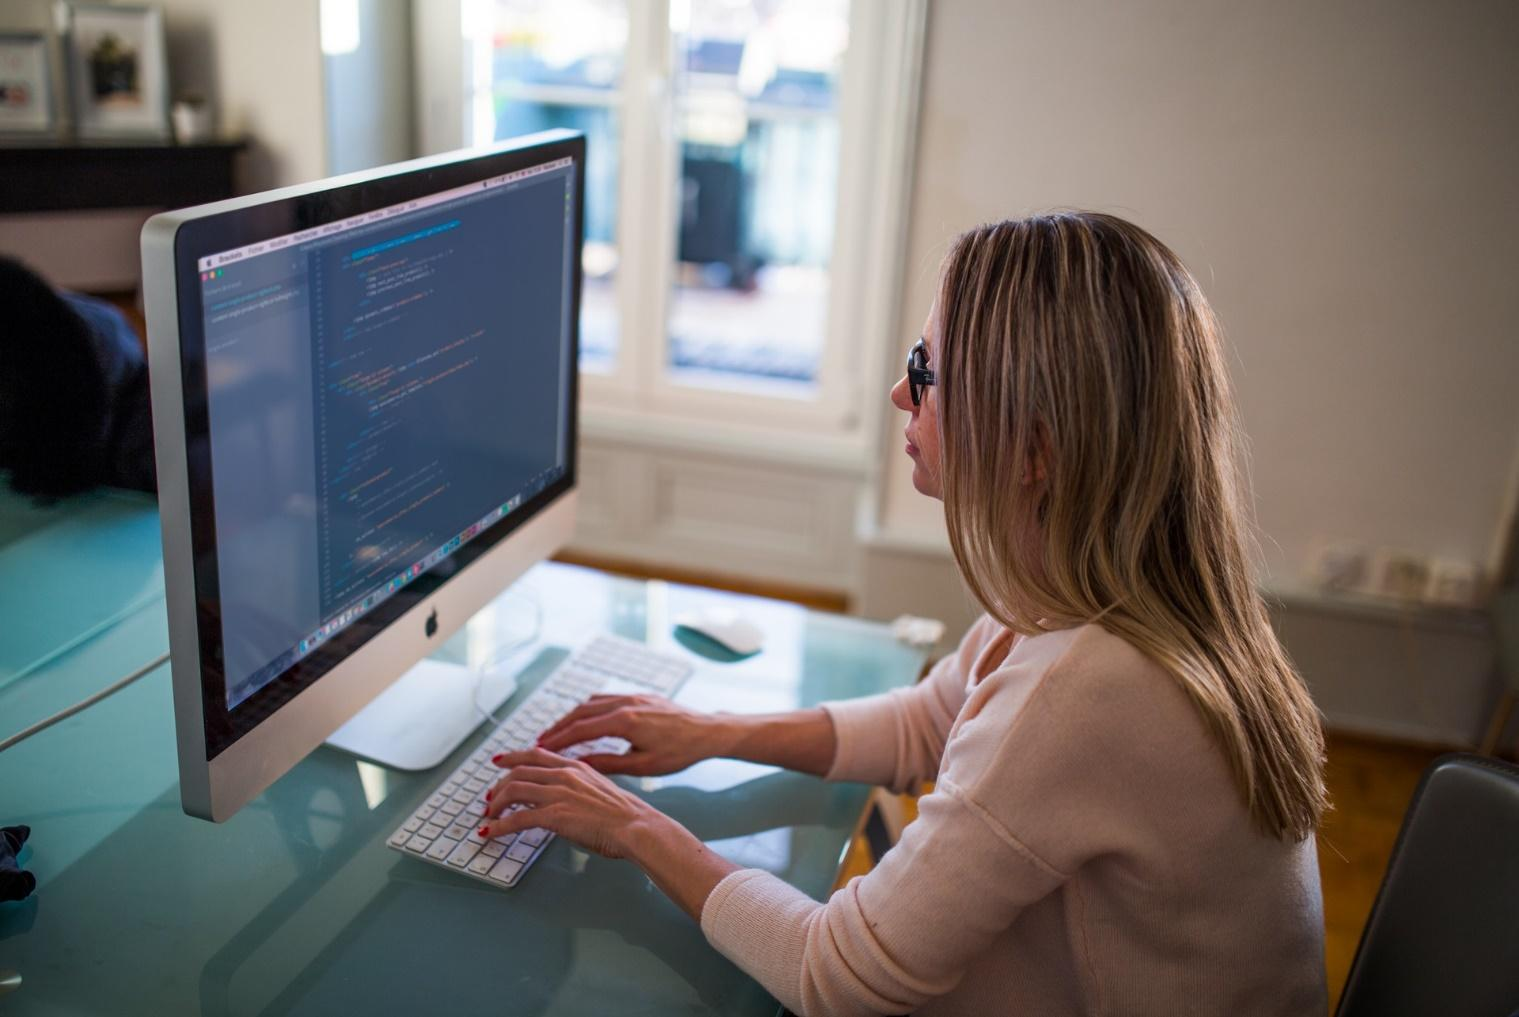 Women in Technology: Why We Need More Code Girls in This Field